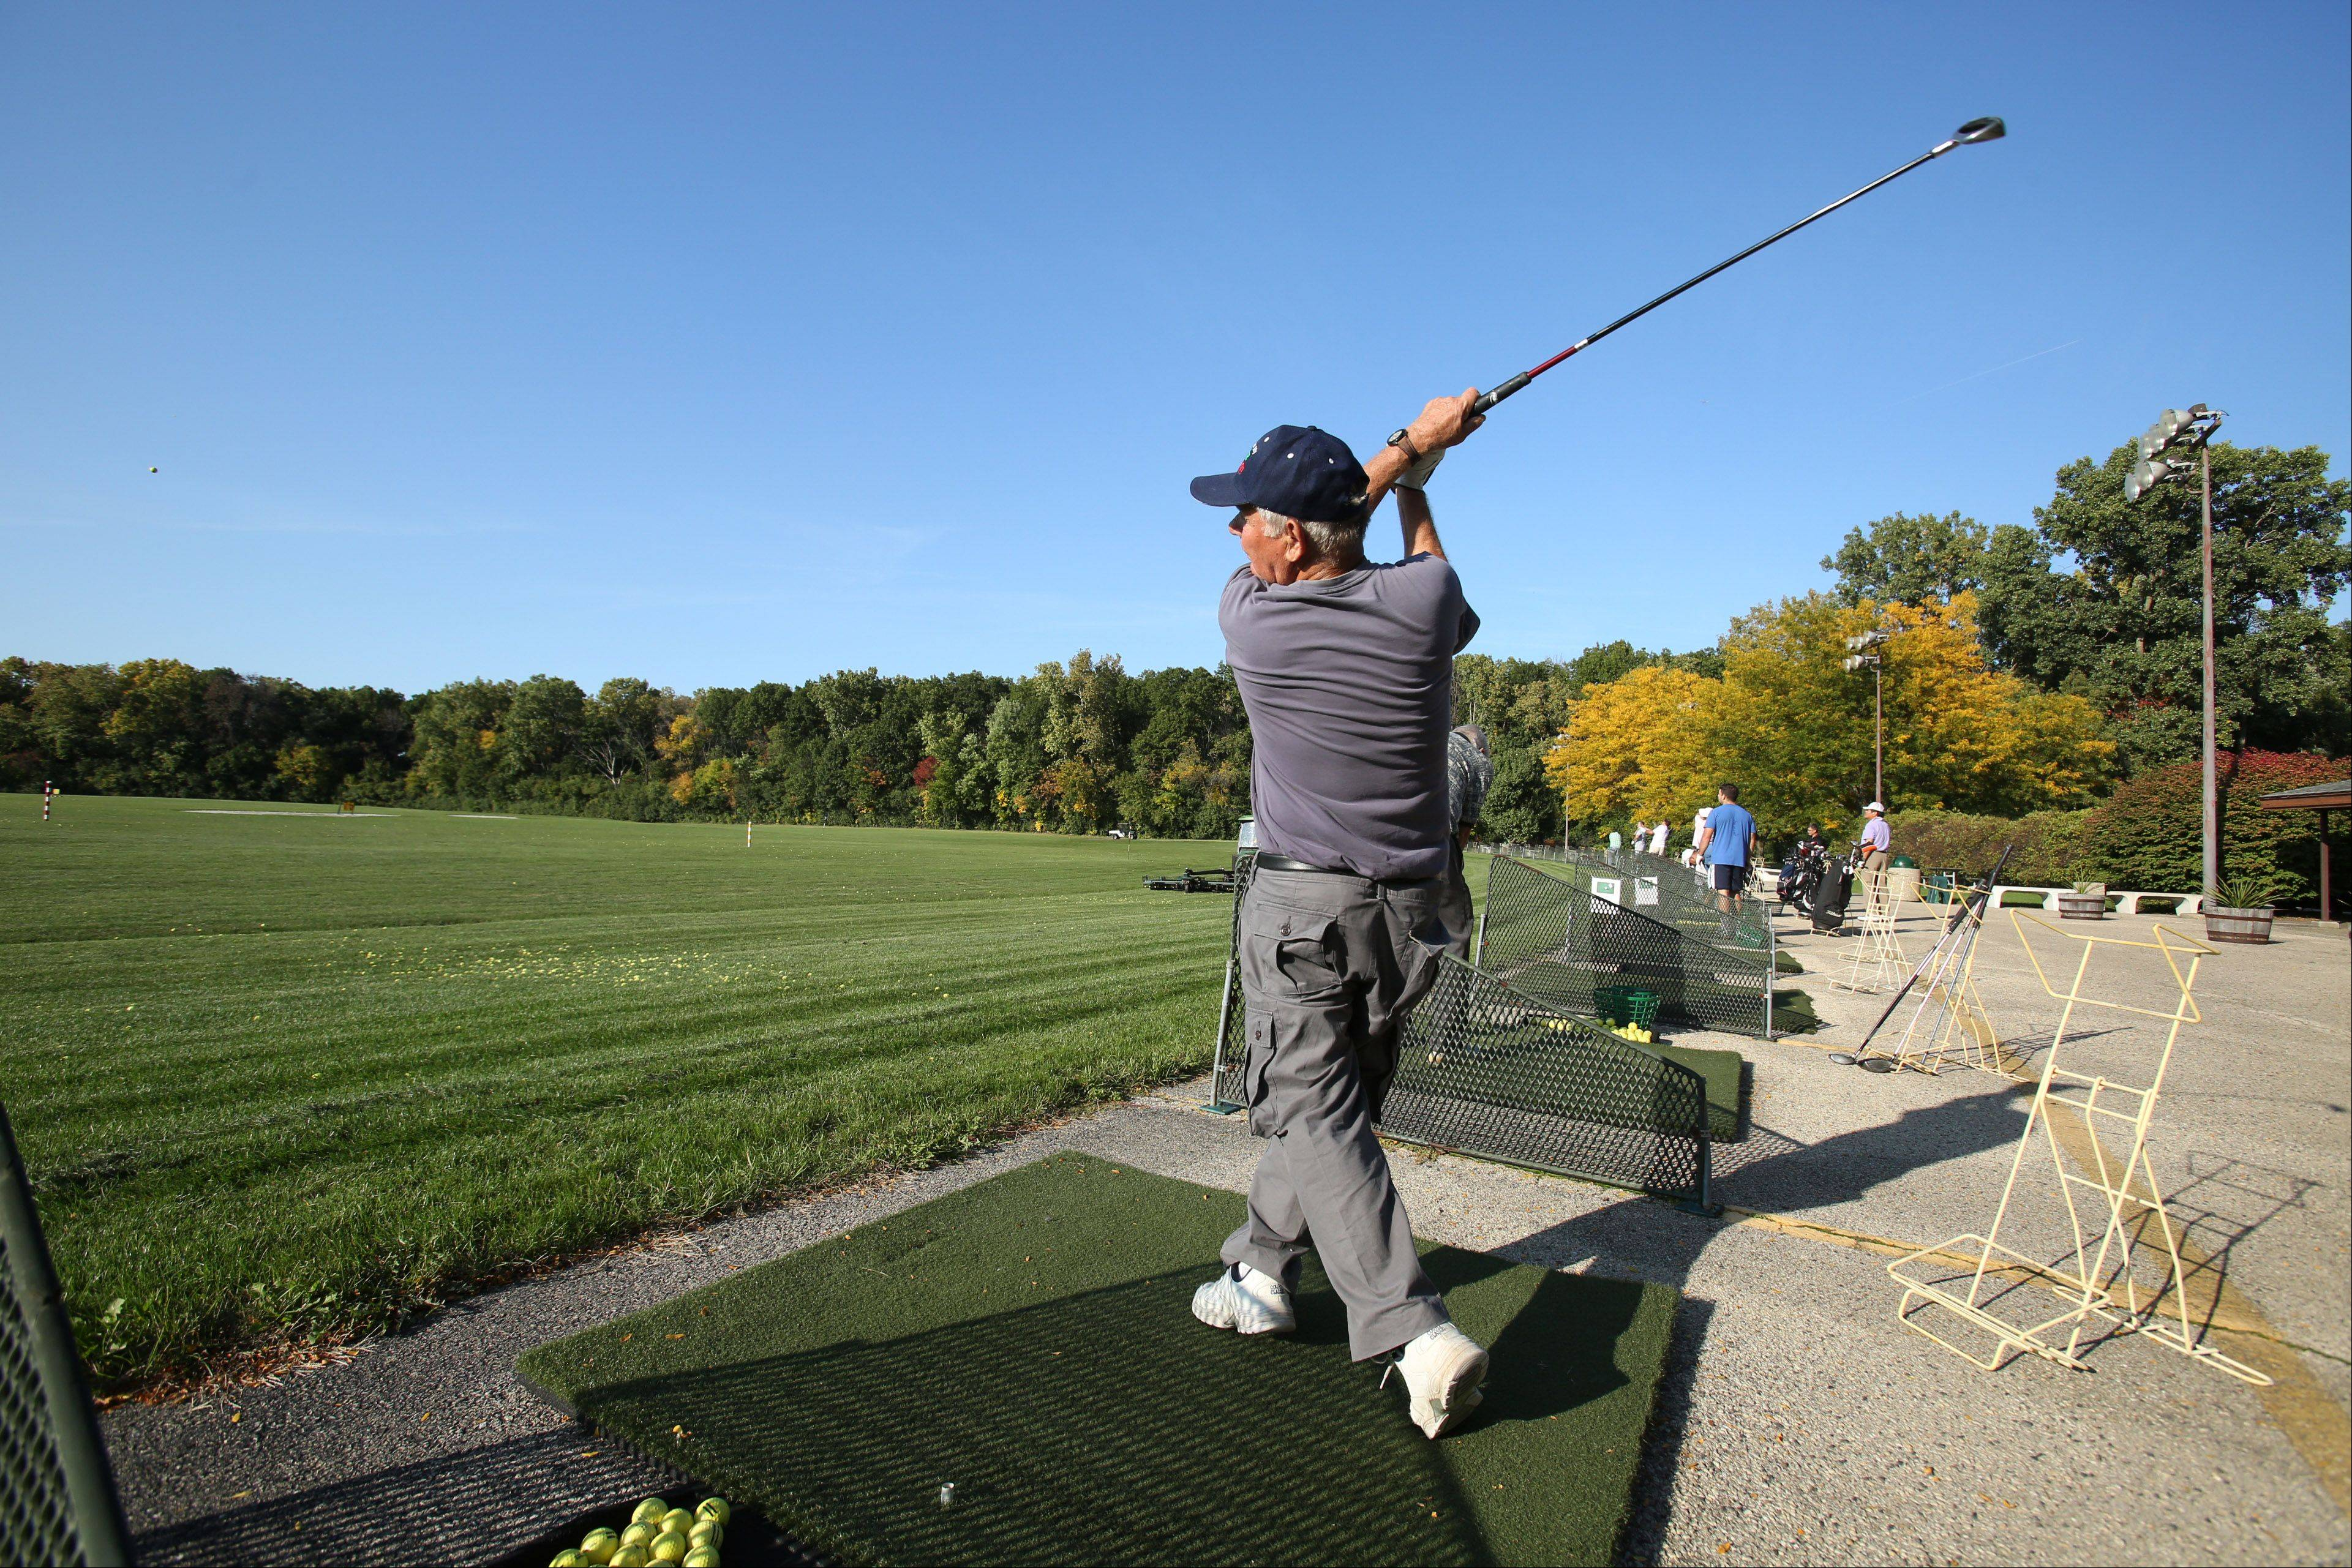 Des Plaines driving range eyed for flood reservoir